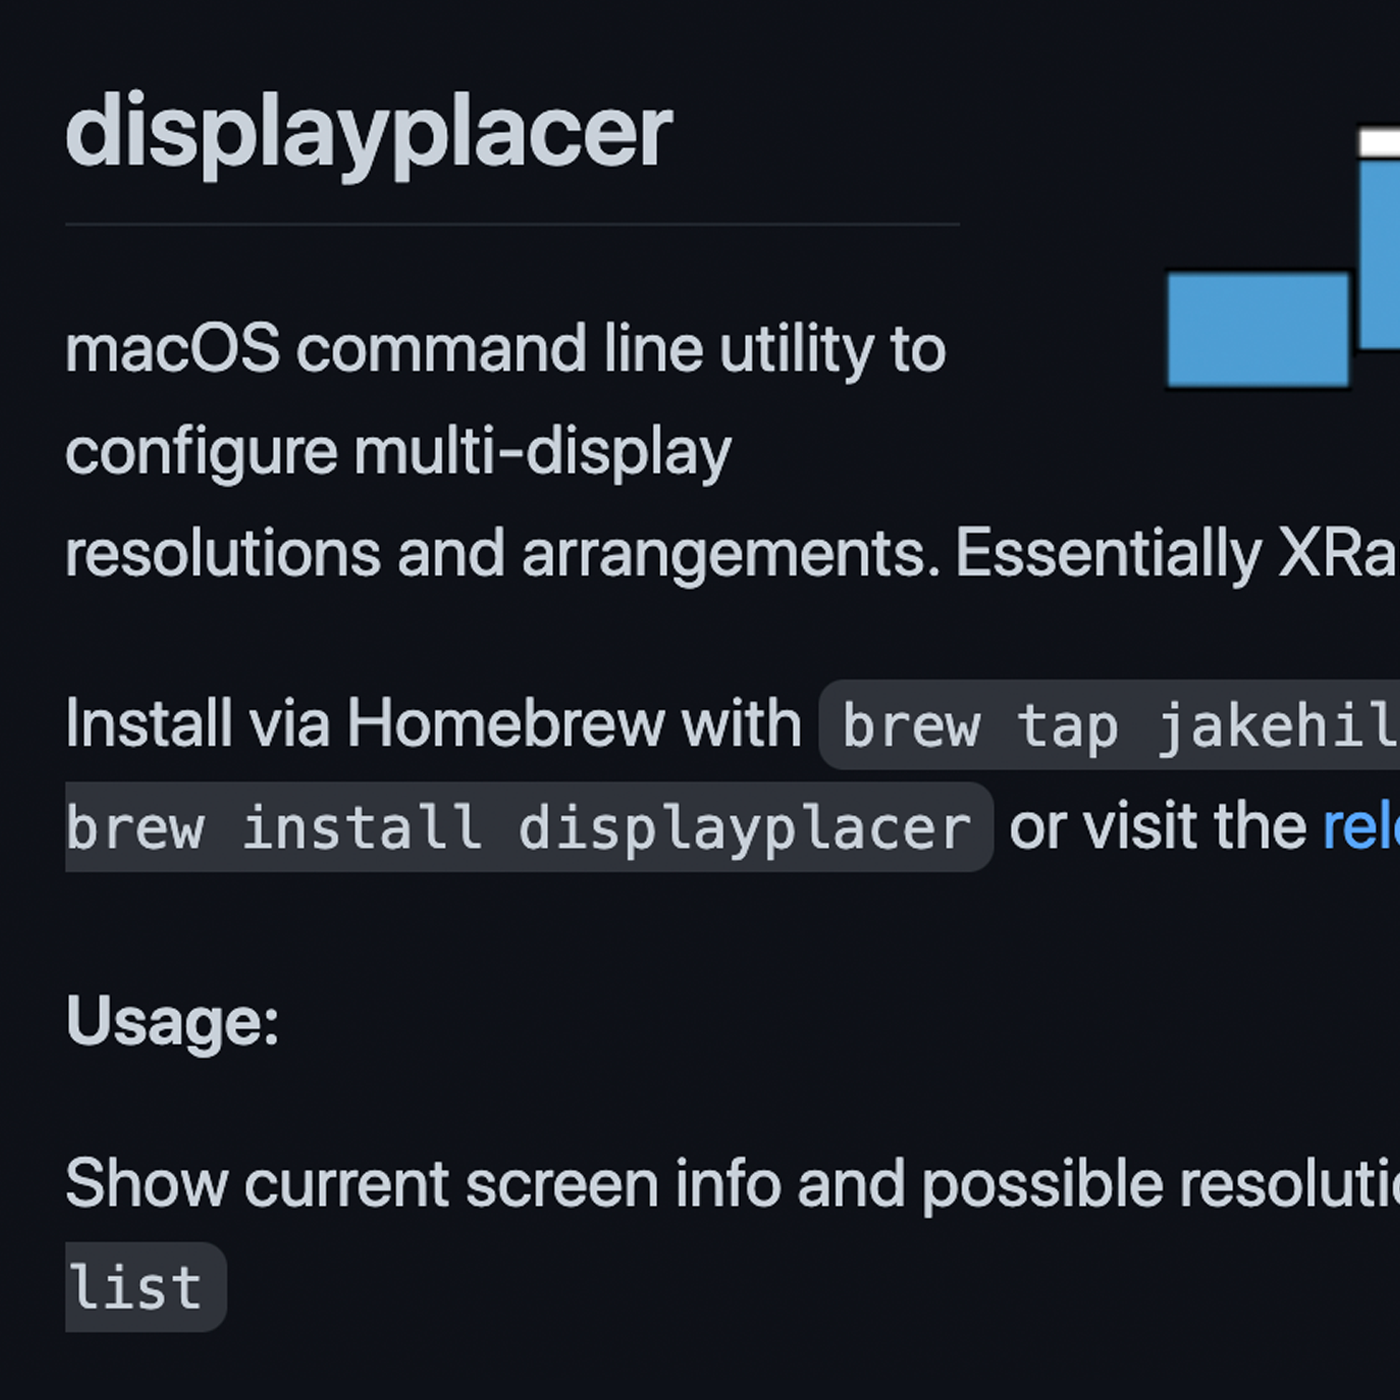 A close-up screenshot of the README file in the displayplacer GitHub repository